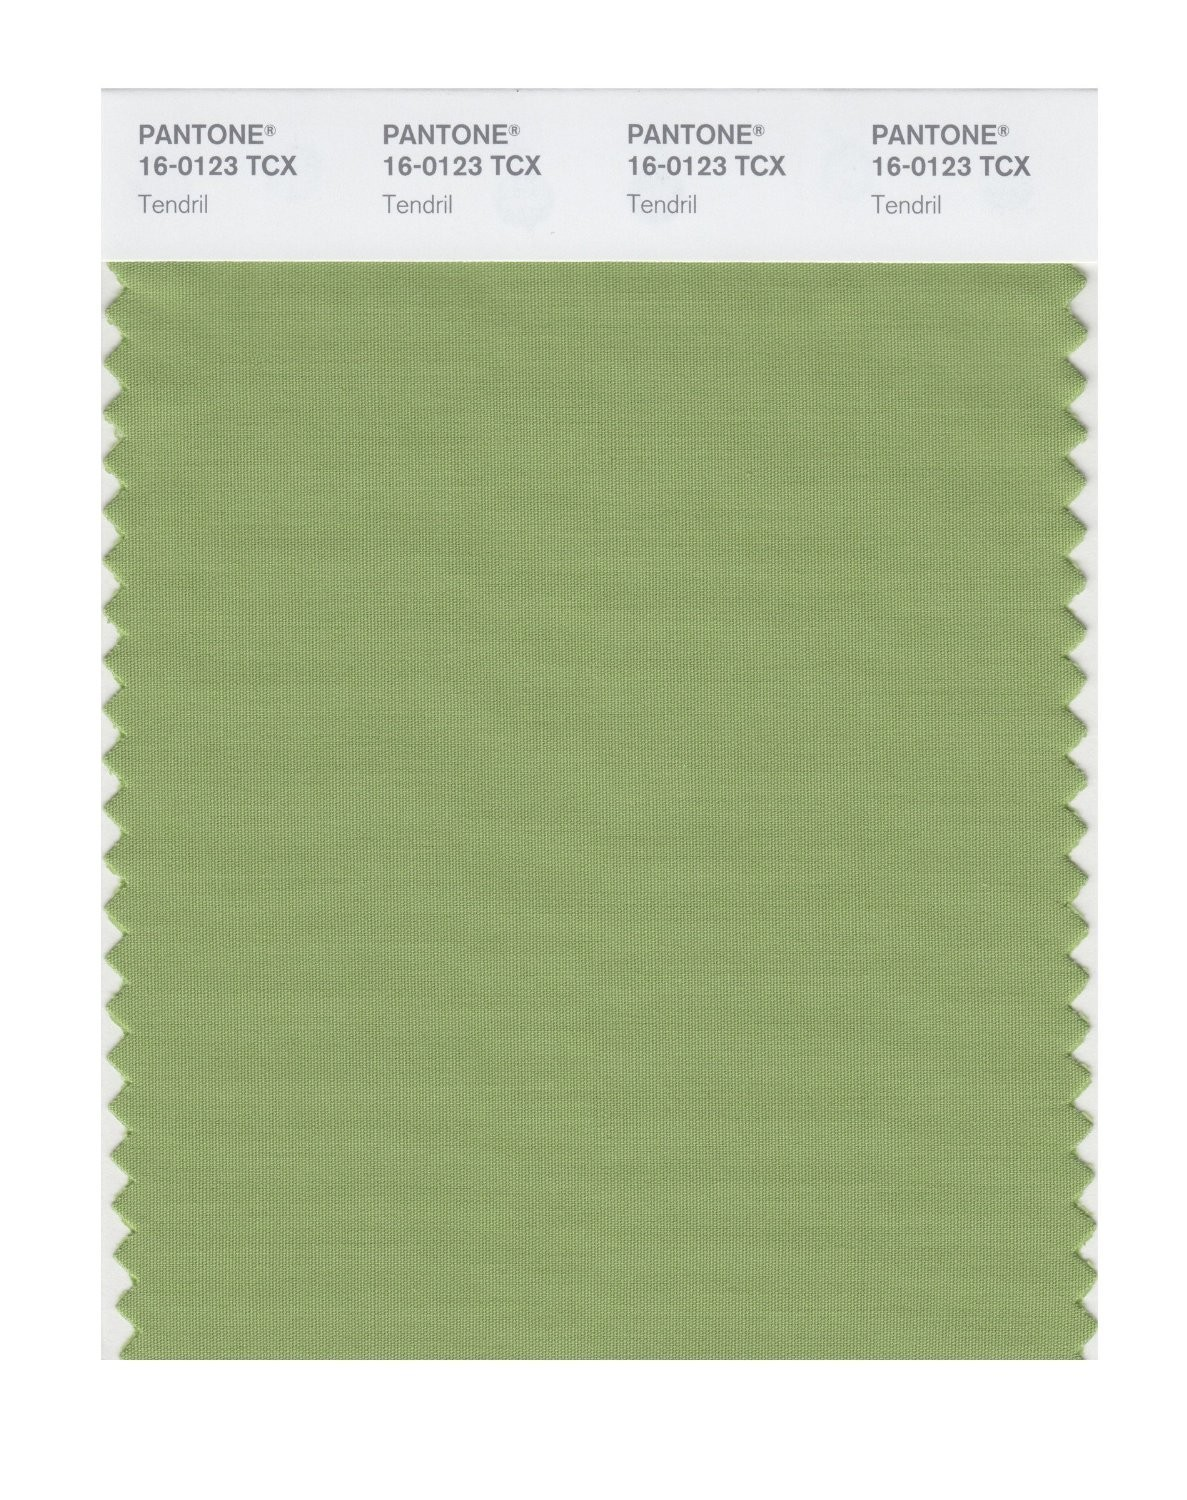 Pantone 16-0123 TCX Swatch Card Tendril